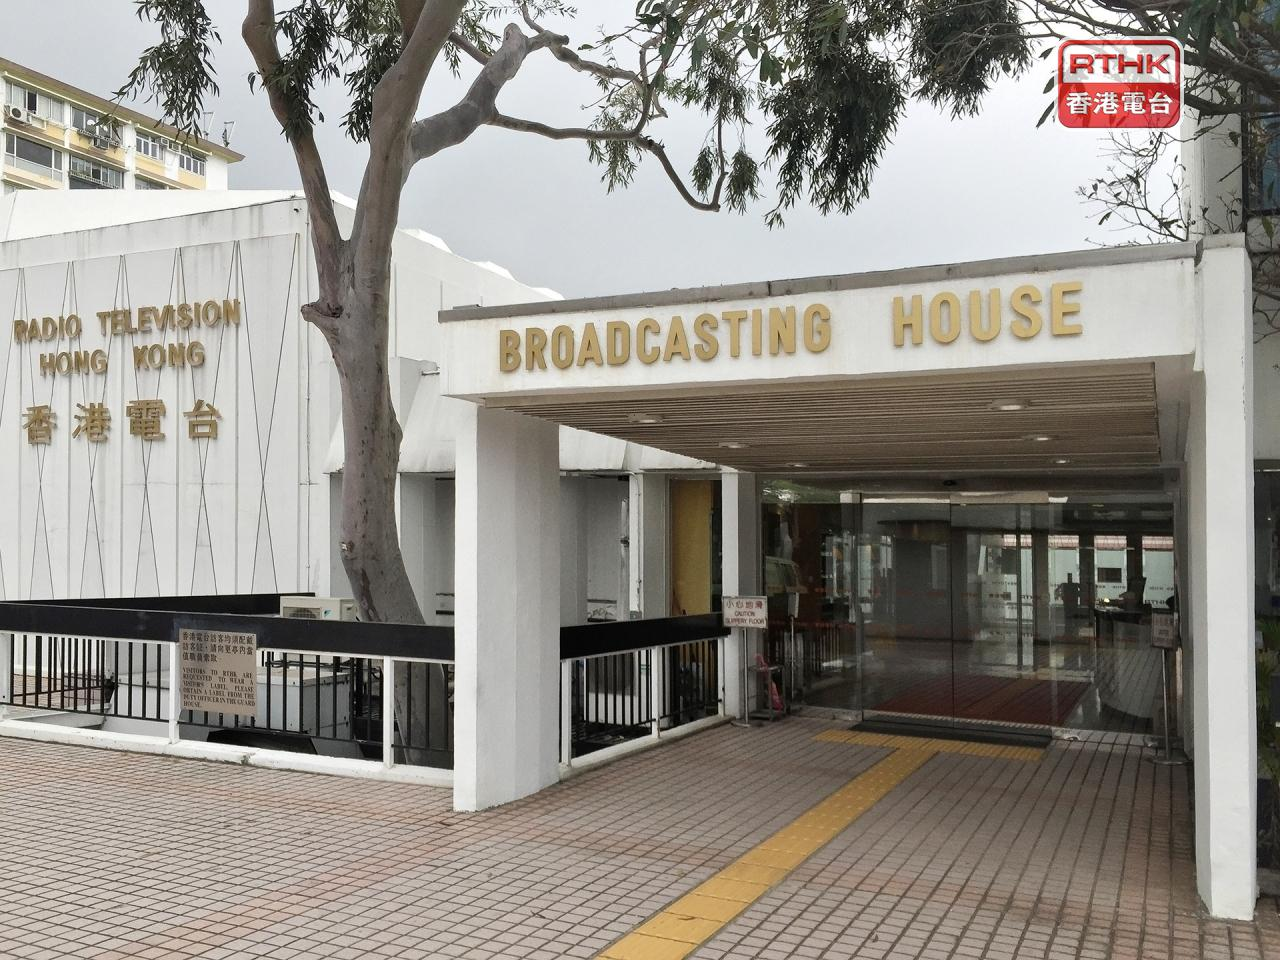 The complaints against RTHK were about a news story about Taiwan and a Cantonese foul word in a song. File photo: RTHK